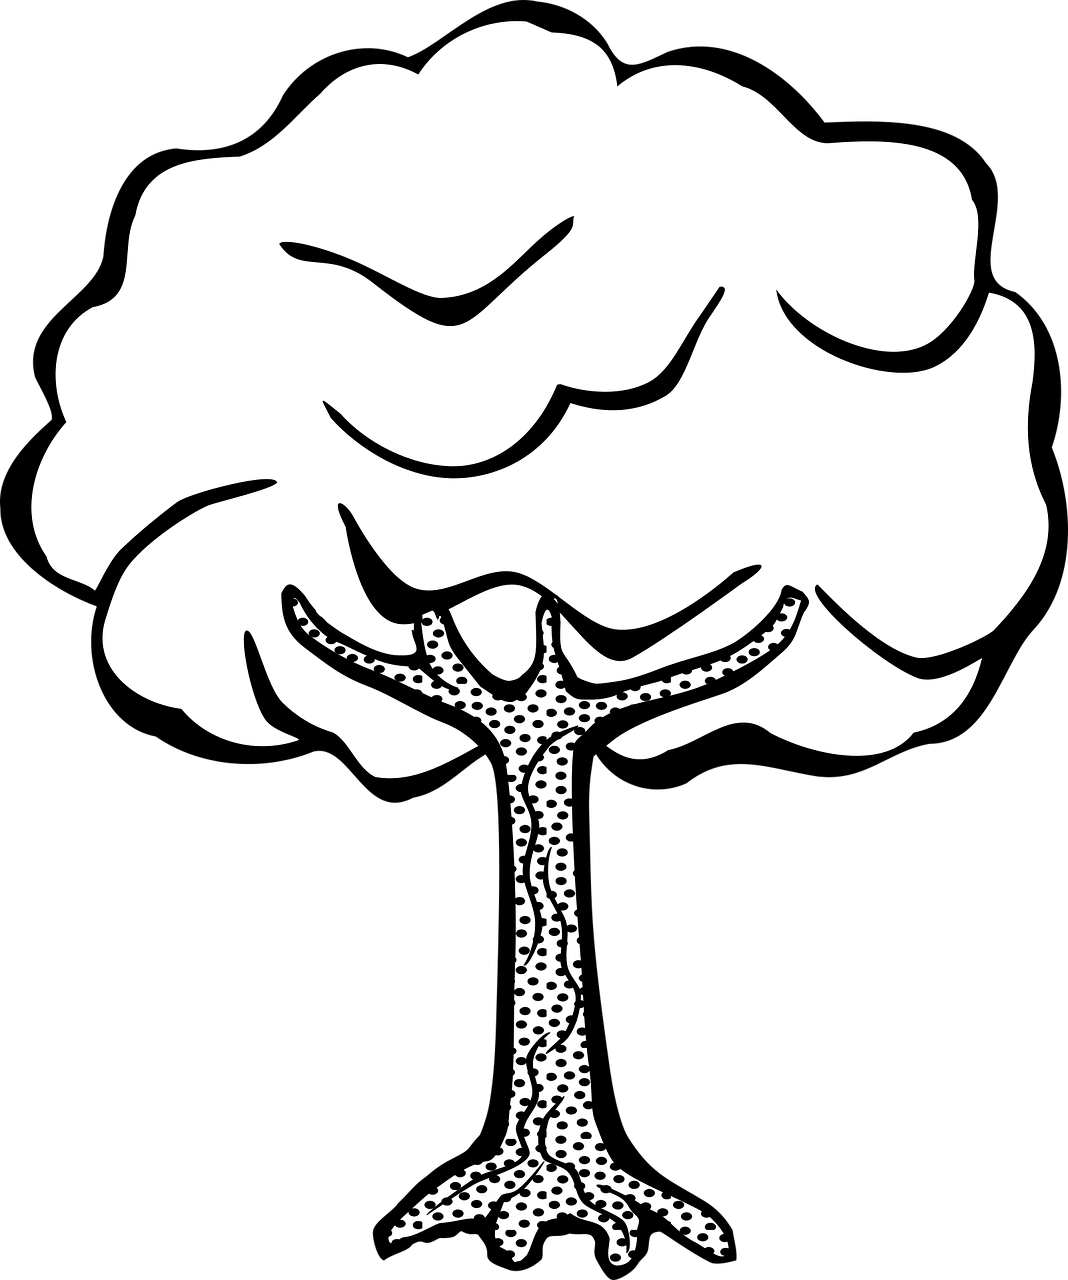 free printable tree coloring pages for kids 14 pics how to draw